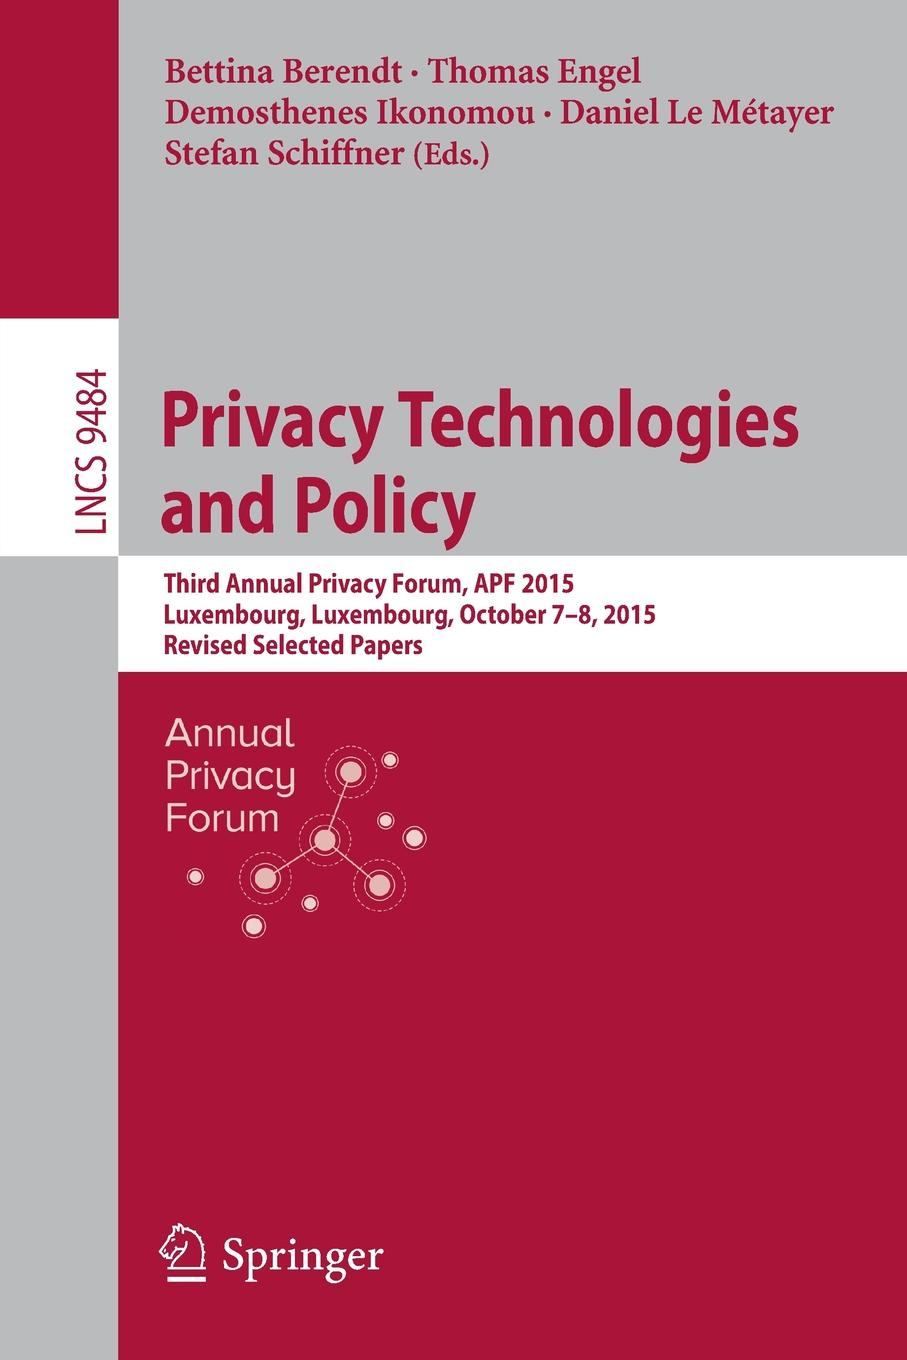 Privacy Technologies and Policy. Third Annual Privacy Forum, APF 2015, Luxembourg, Luxembourg, October 7-8, 2015, Revised Selected Papers cyber security and privacy third cyber security and privacy eu forum csp forum 2014 athens greece may 21 22 2014 revised selected papers